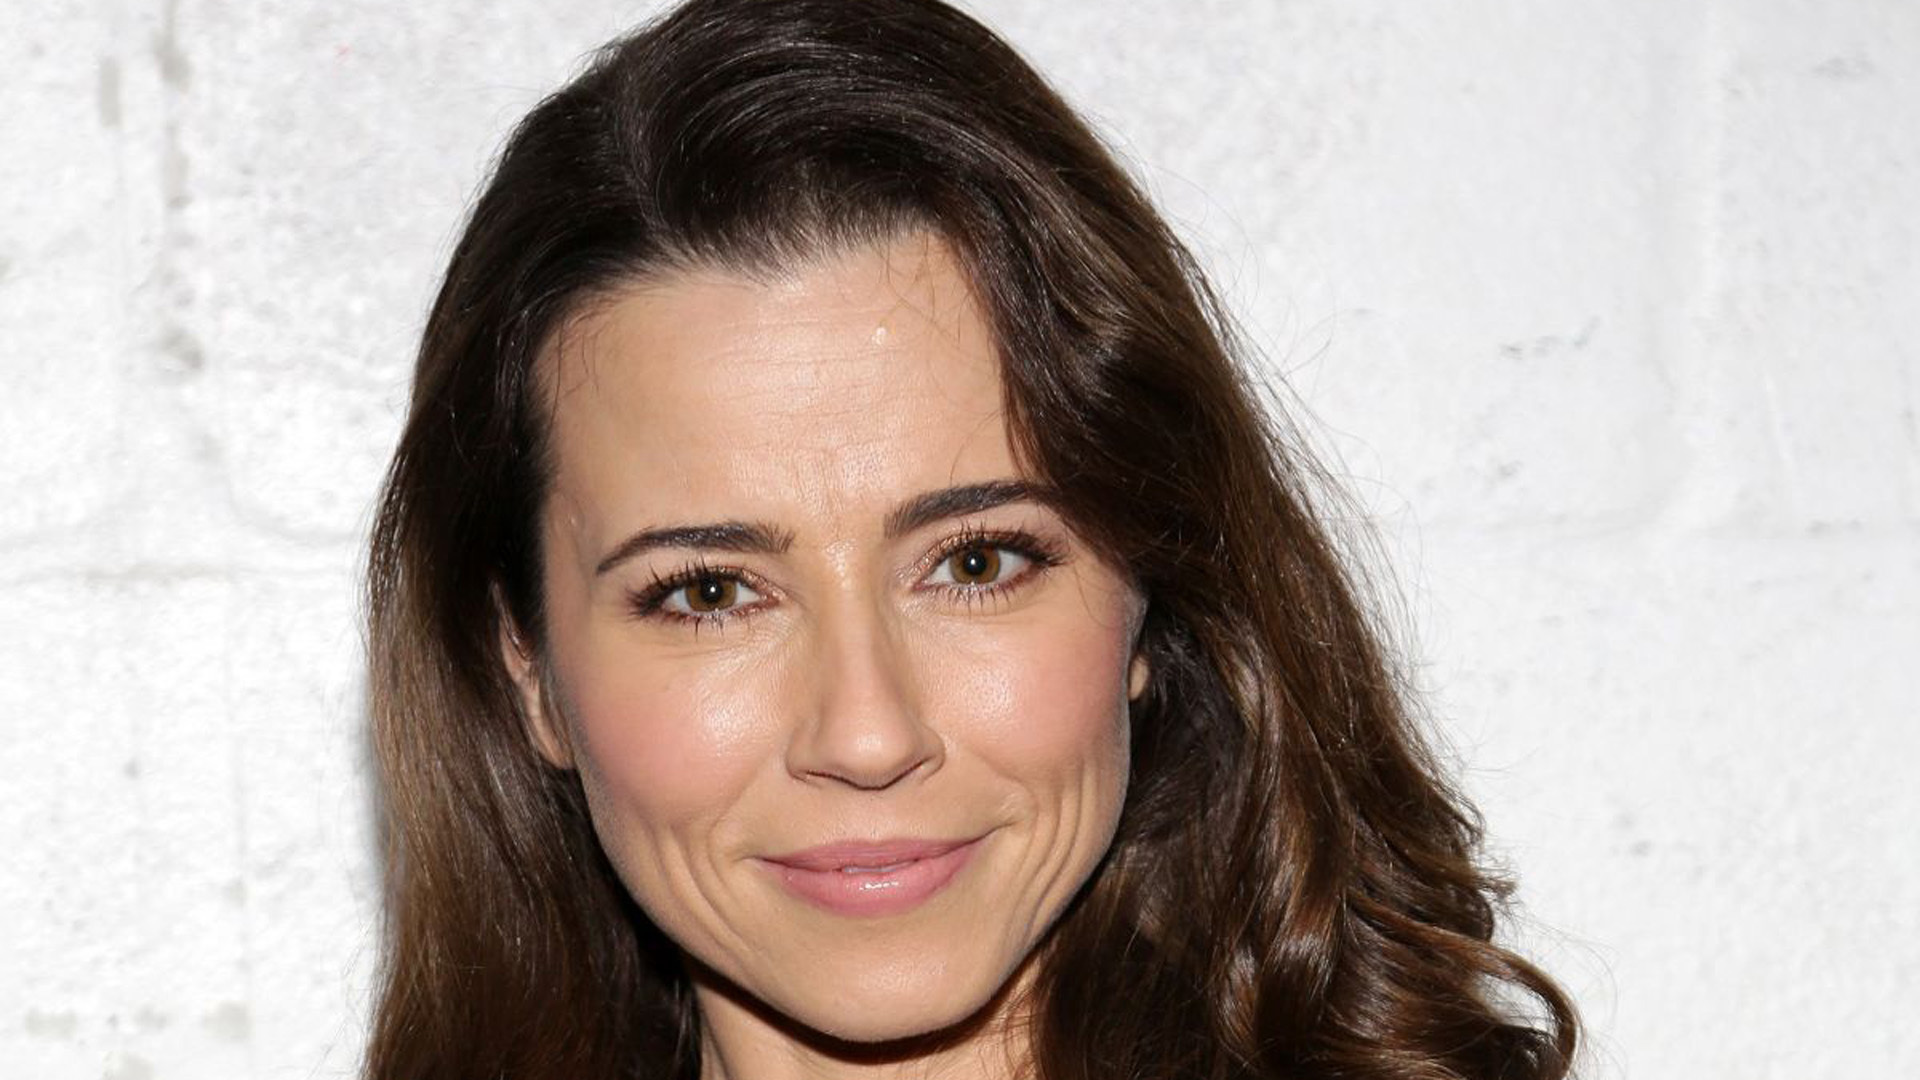 Linda Cardellini Wallpapers Images Photos Pictures Backgrounds